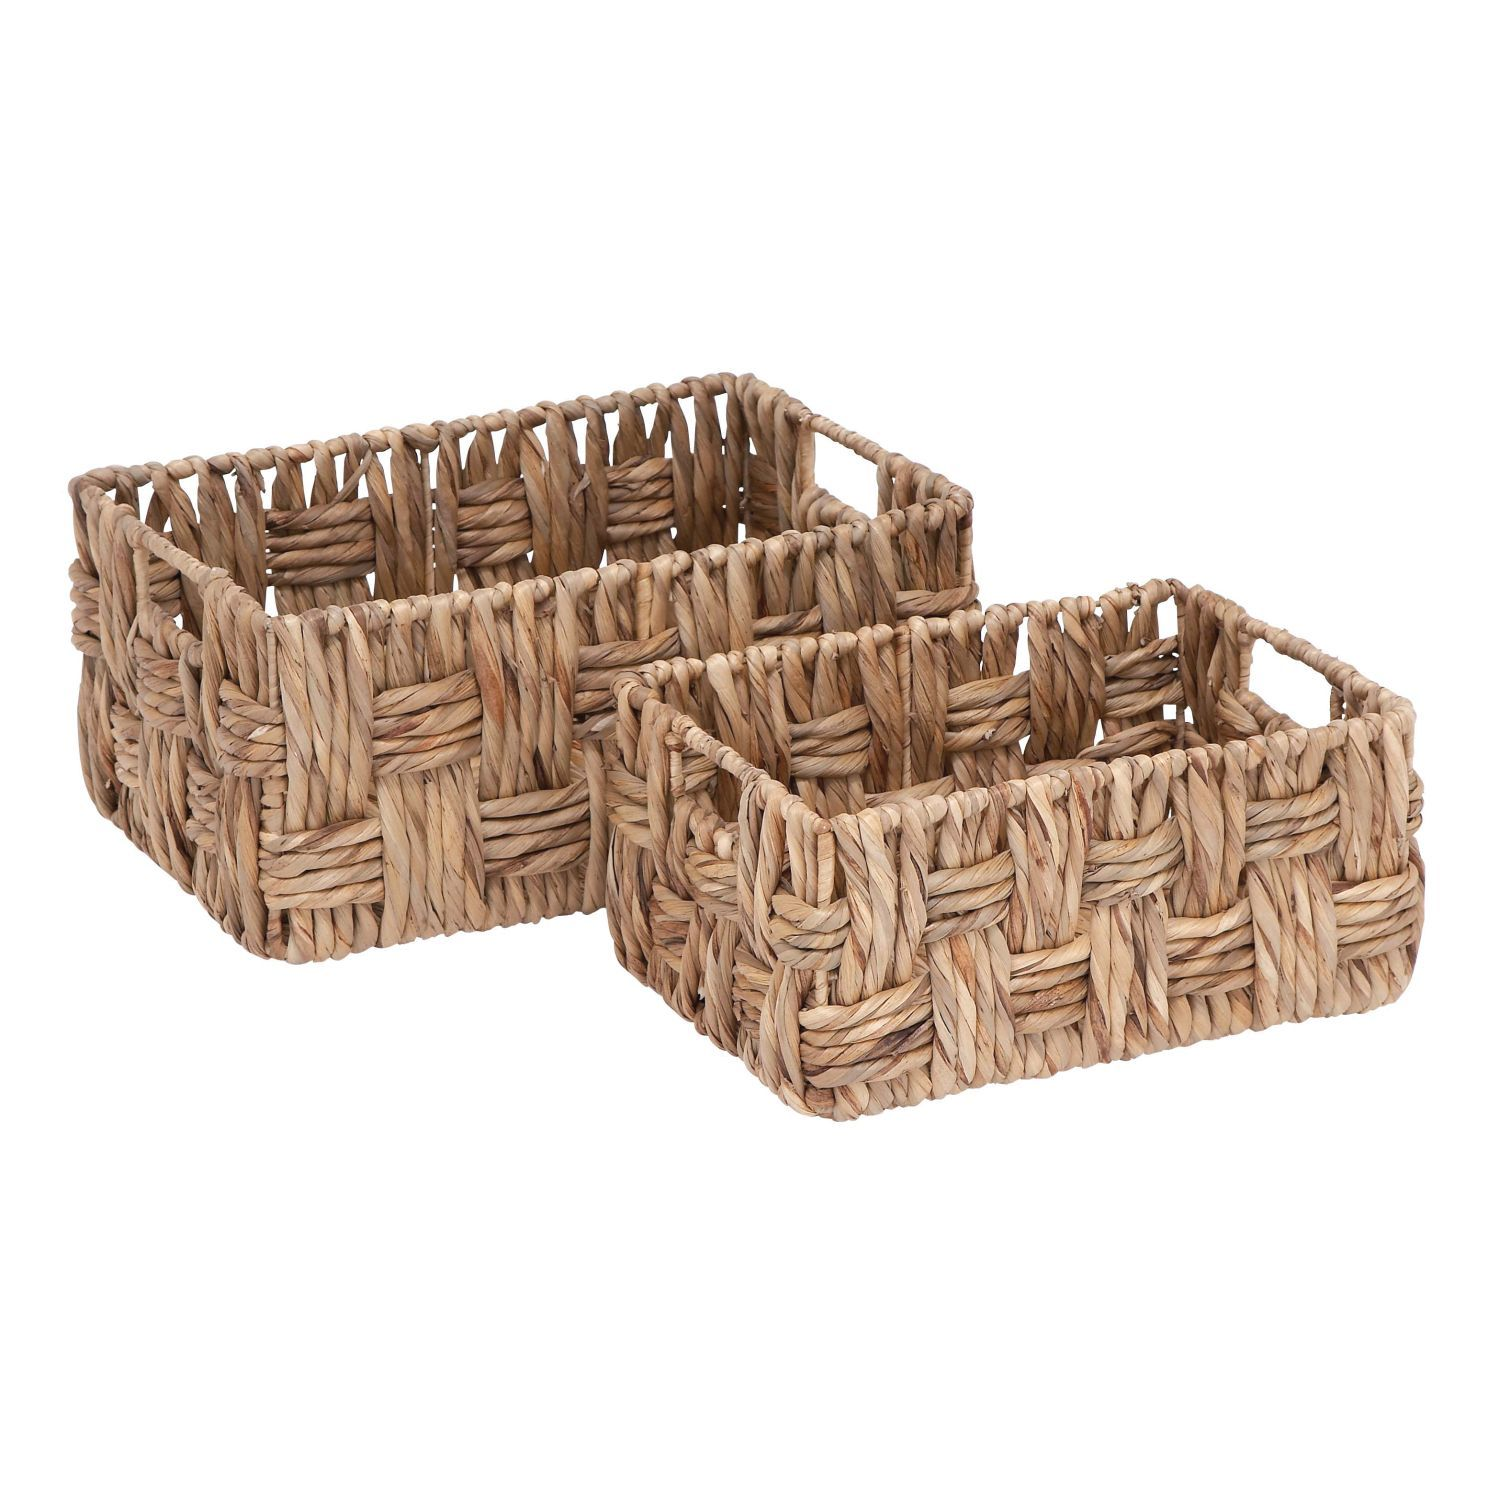 Metal Wicker Baskets   360